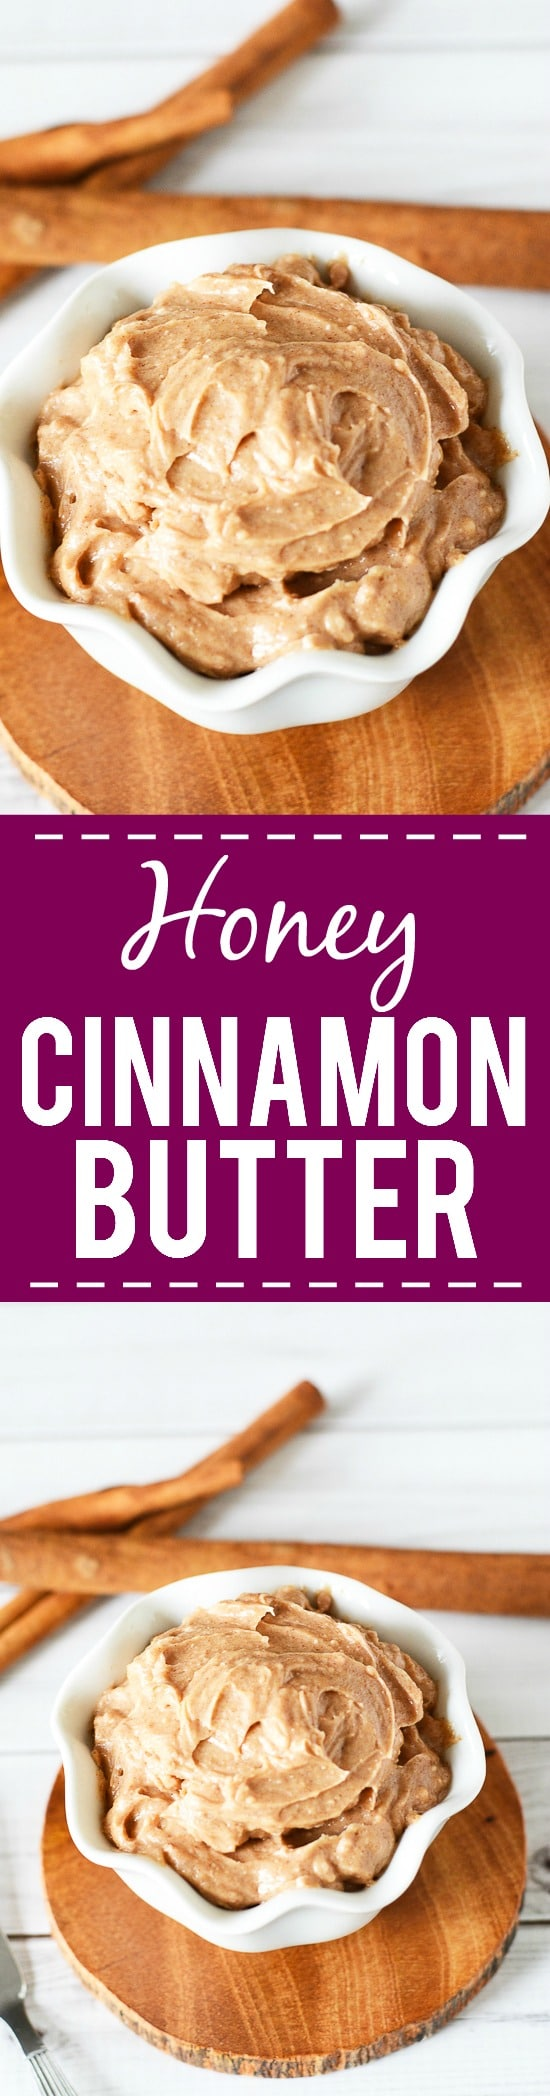 Honey Cinnamon Butter Recipe - What could be better than butter, you ask? This sweet, warm Honey Cinnamon Butter with just 4 ingredients that you can whip up in just 10 minutes! Put it in a mason jar for a super yummy DIY gift idea!